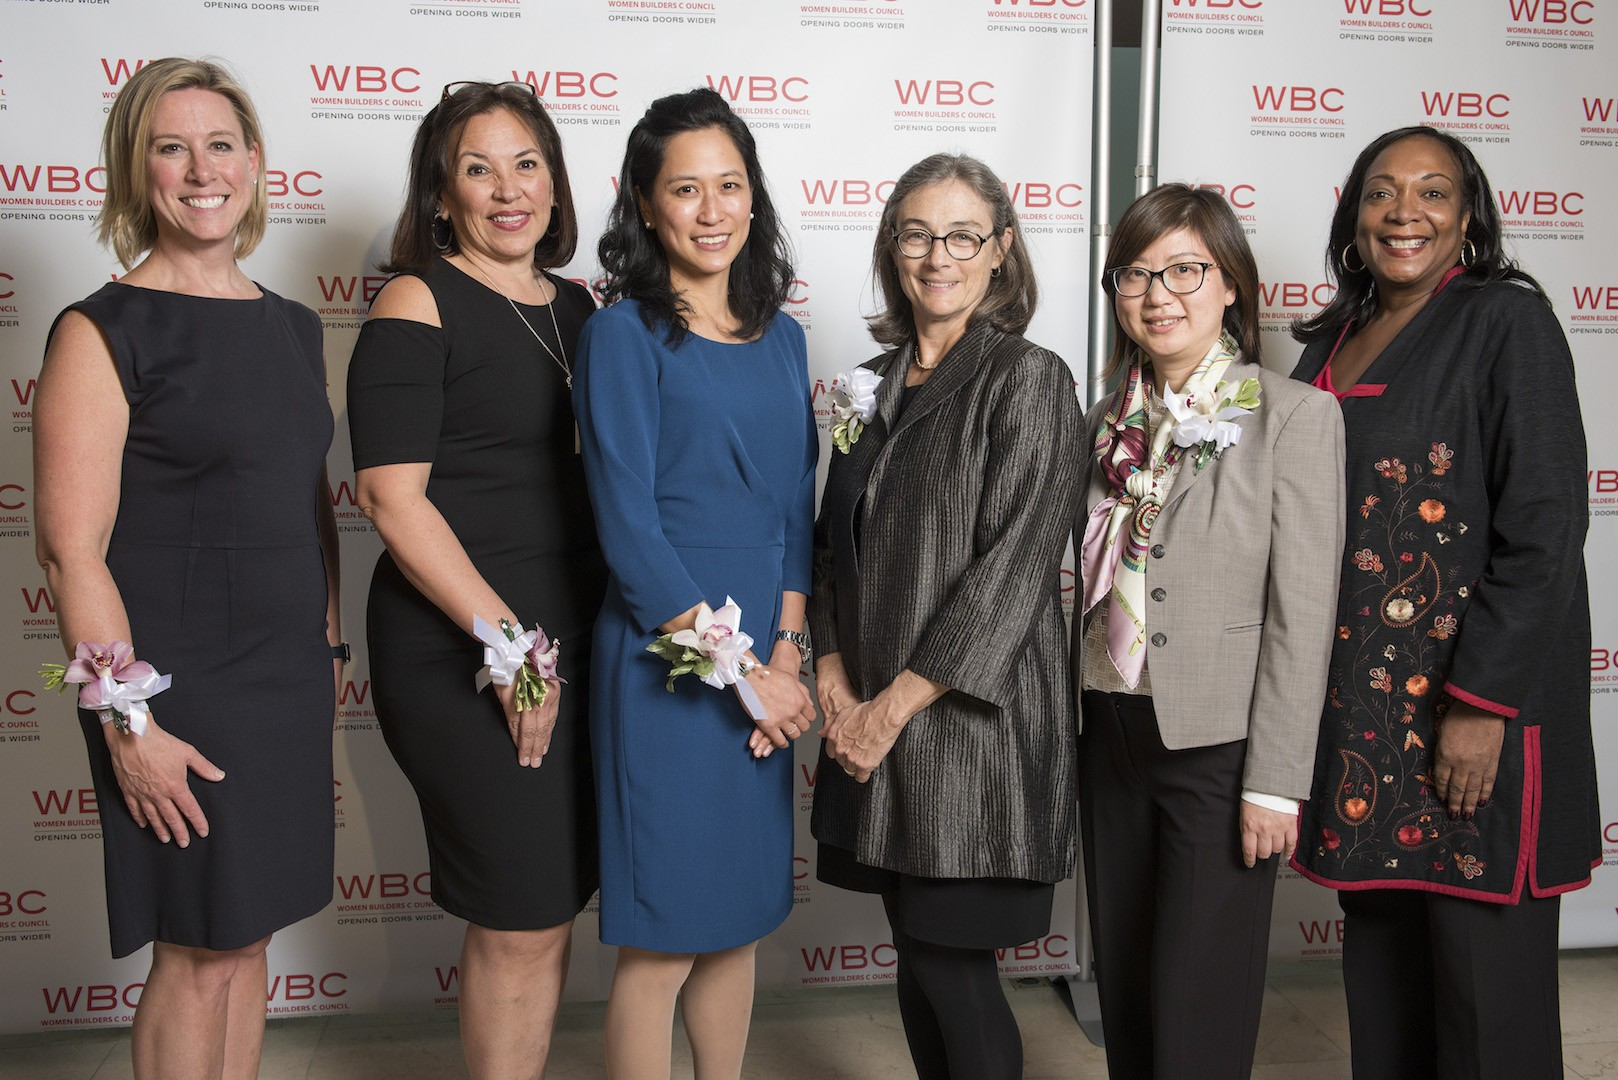 """Outstanding Women in Construction"" from Columbia University Facilities and Operations and Columbia University Medical Center Facilities Management, as honored by the Women Builders Council (l to r): Karri Rivera, Diana Mejia, Geraldine Tan, Janet Grapengeter, Kim Chen, and Tanya Pope."